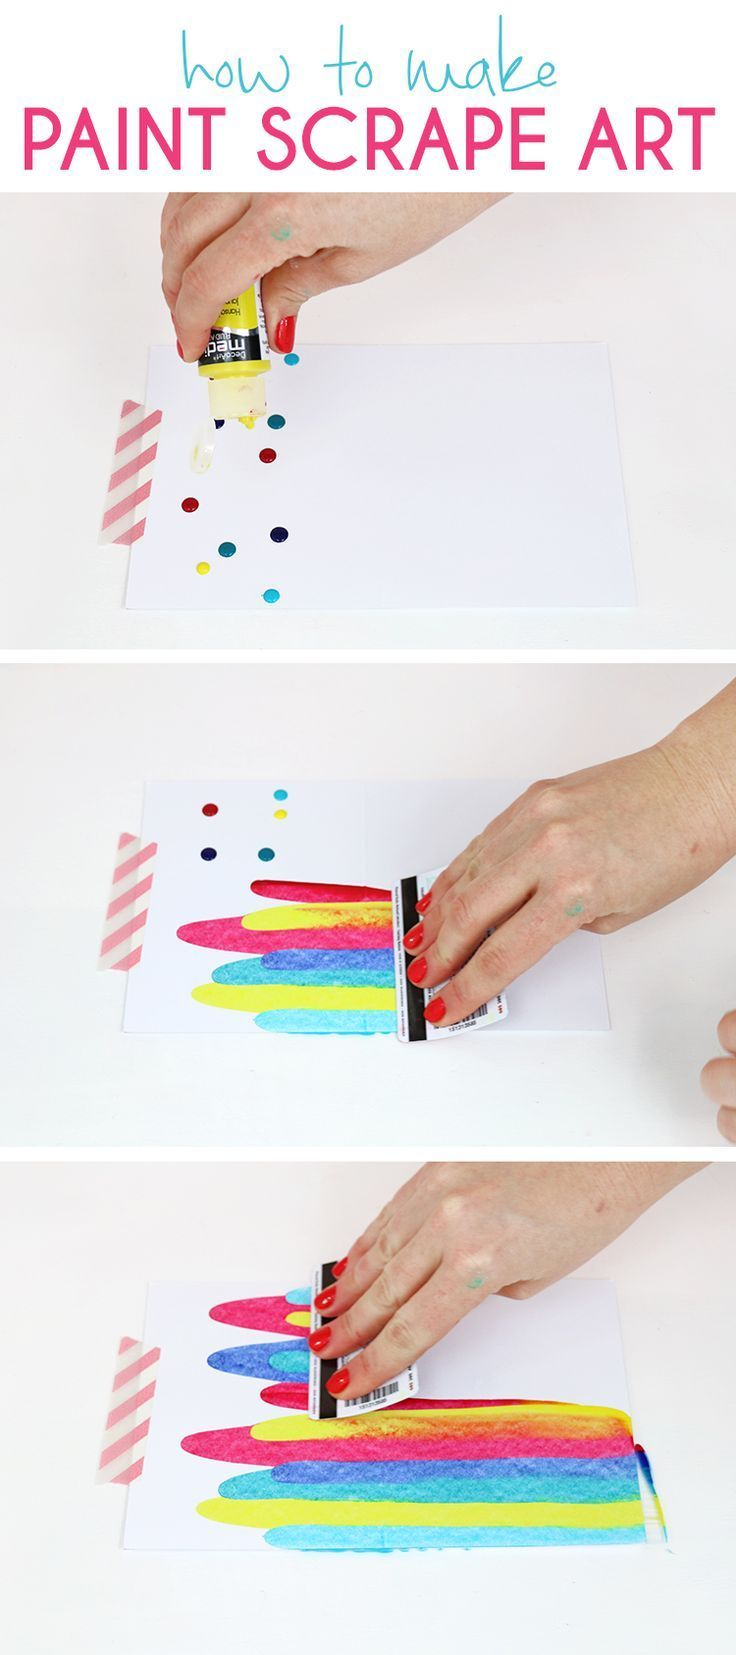 Paint scrape notecards diy art project idea diy art for Diy paint